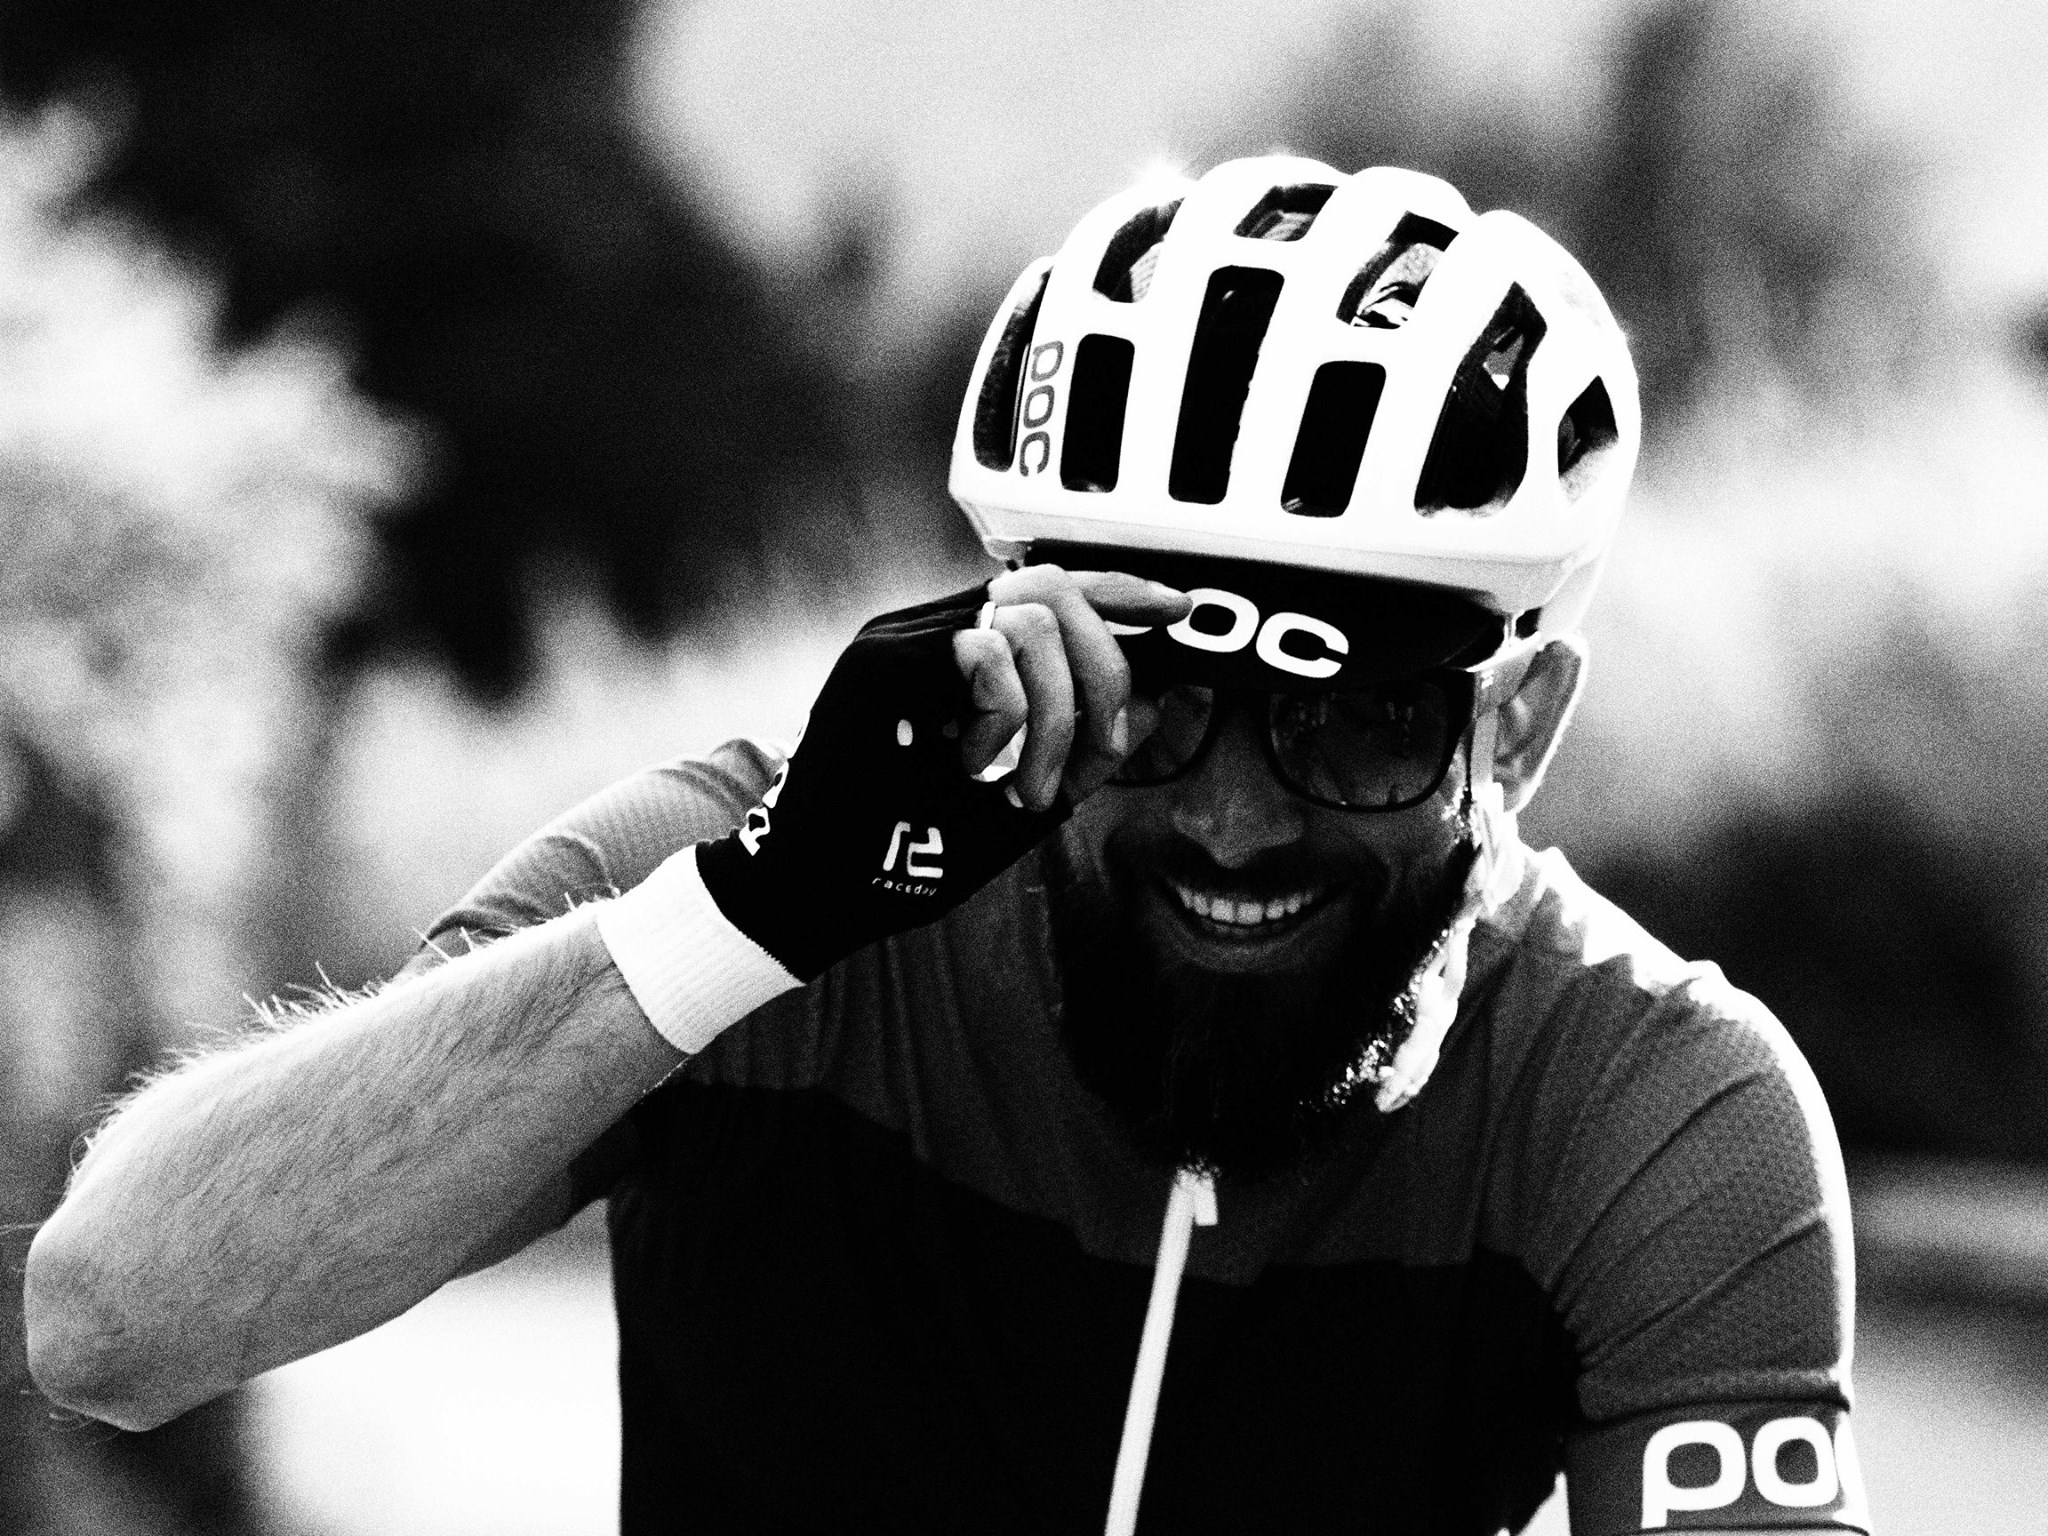 POC is working with many bike apparel categories, for example aero and MTB apparel